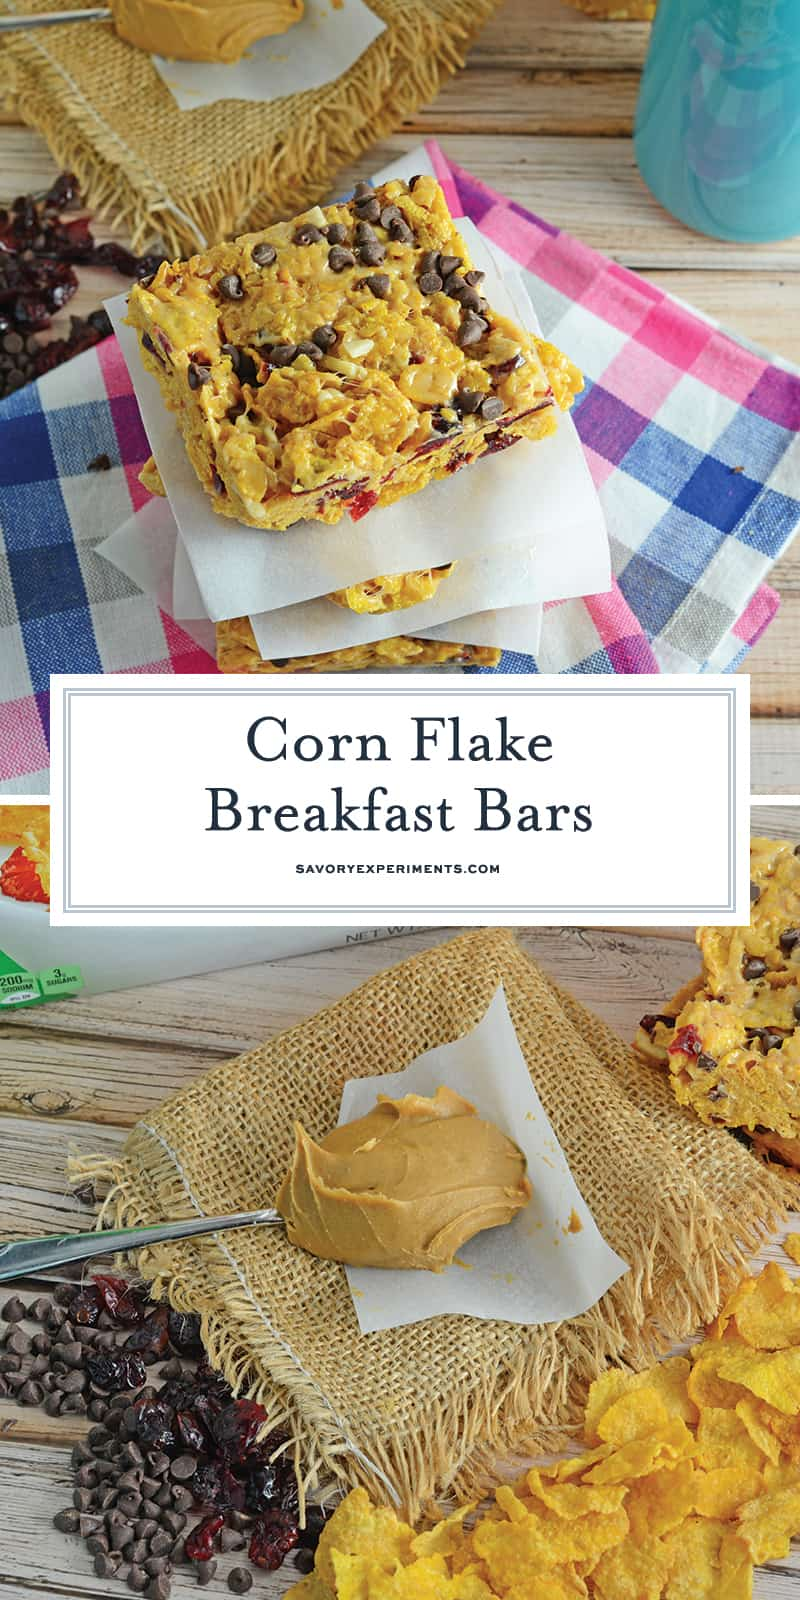 Corn Flake Breakfast Bars are a 15-minute handheld breakfast bar made from corn flakes, dried cranberries, slivered almonds, peanut butter, mini chocolate chips and marshmallows. #breakfastbars #makeaheadbreakfast www.savoryexperiments.com